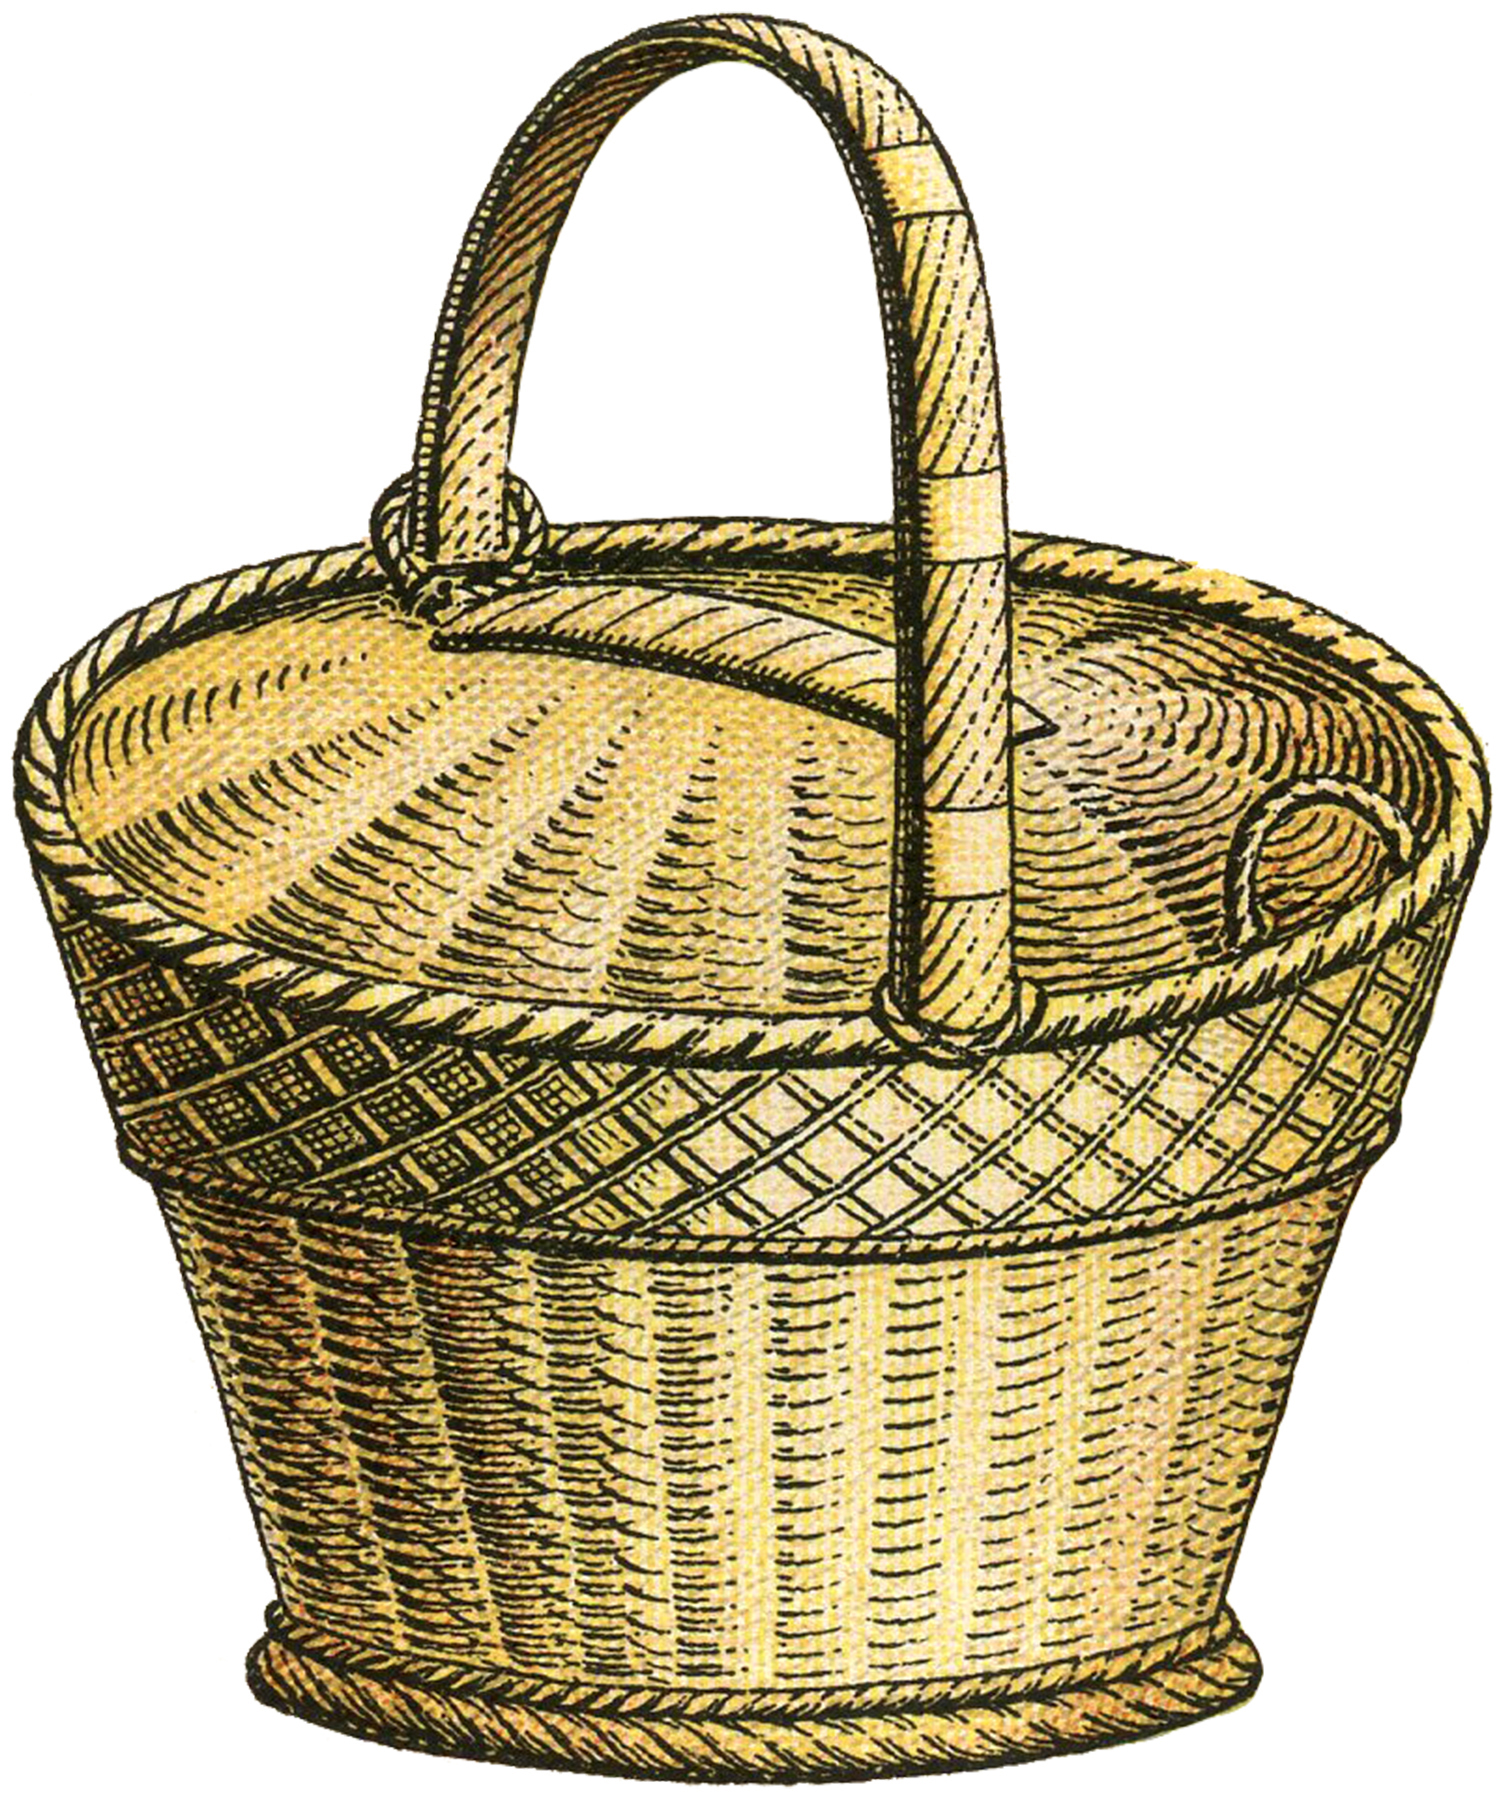 Art Basket Facebook : Wicker basket image the graphics fairy